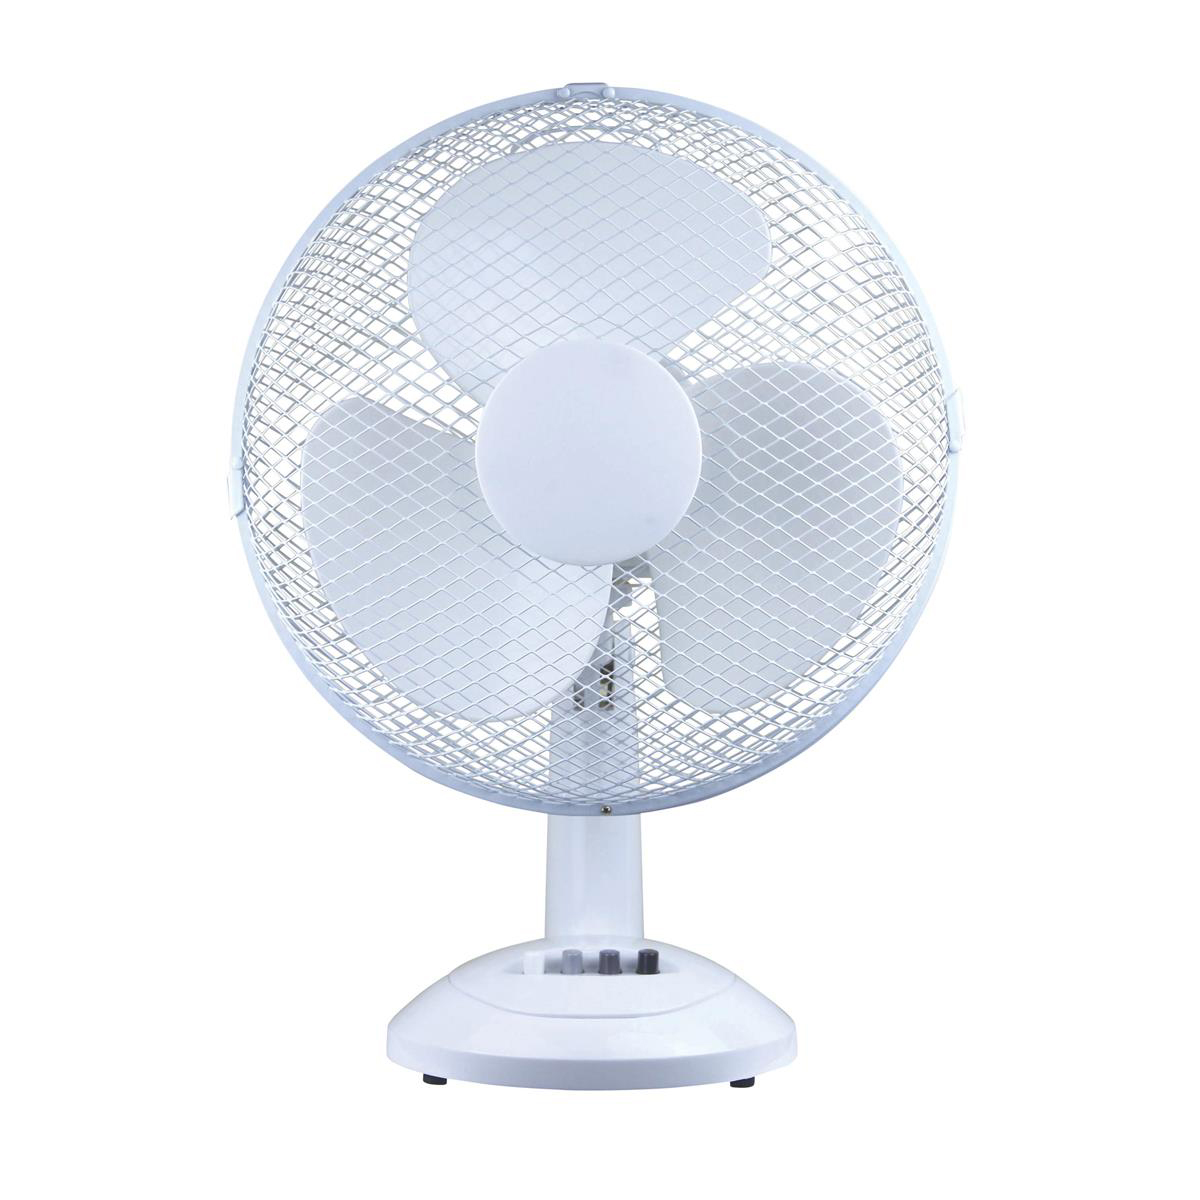 5 Star Facilities Desk Fan 12 Inch 90deg Oscillating with Tilt & Lock 3-Speed H480mm Dia.305mm White